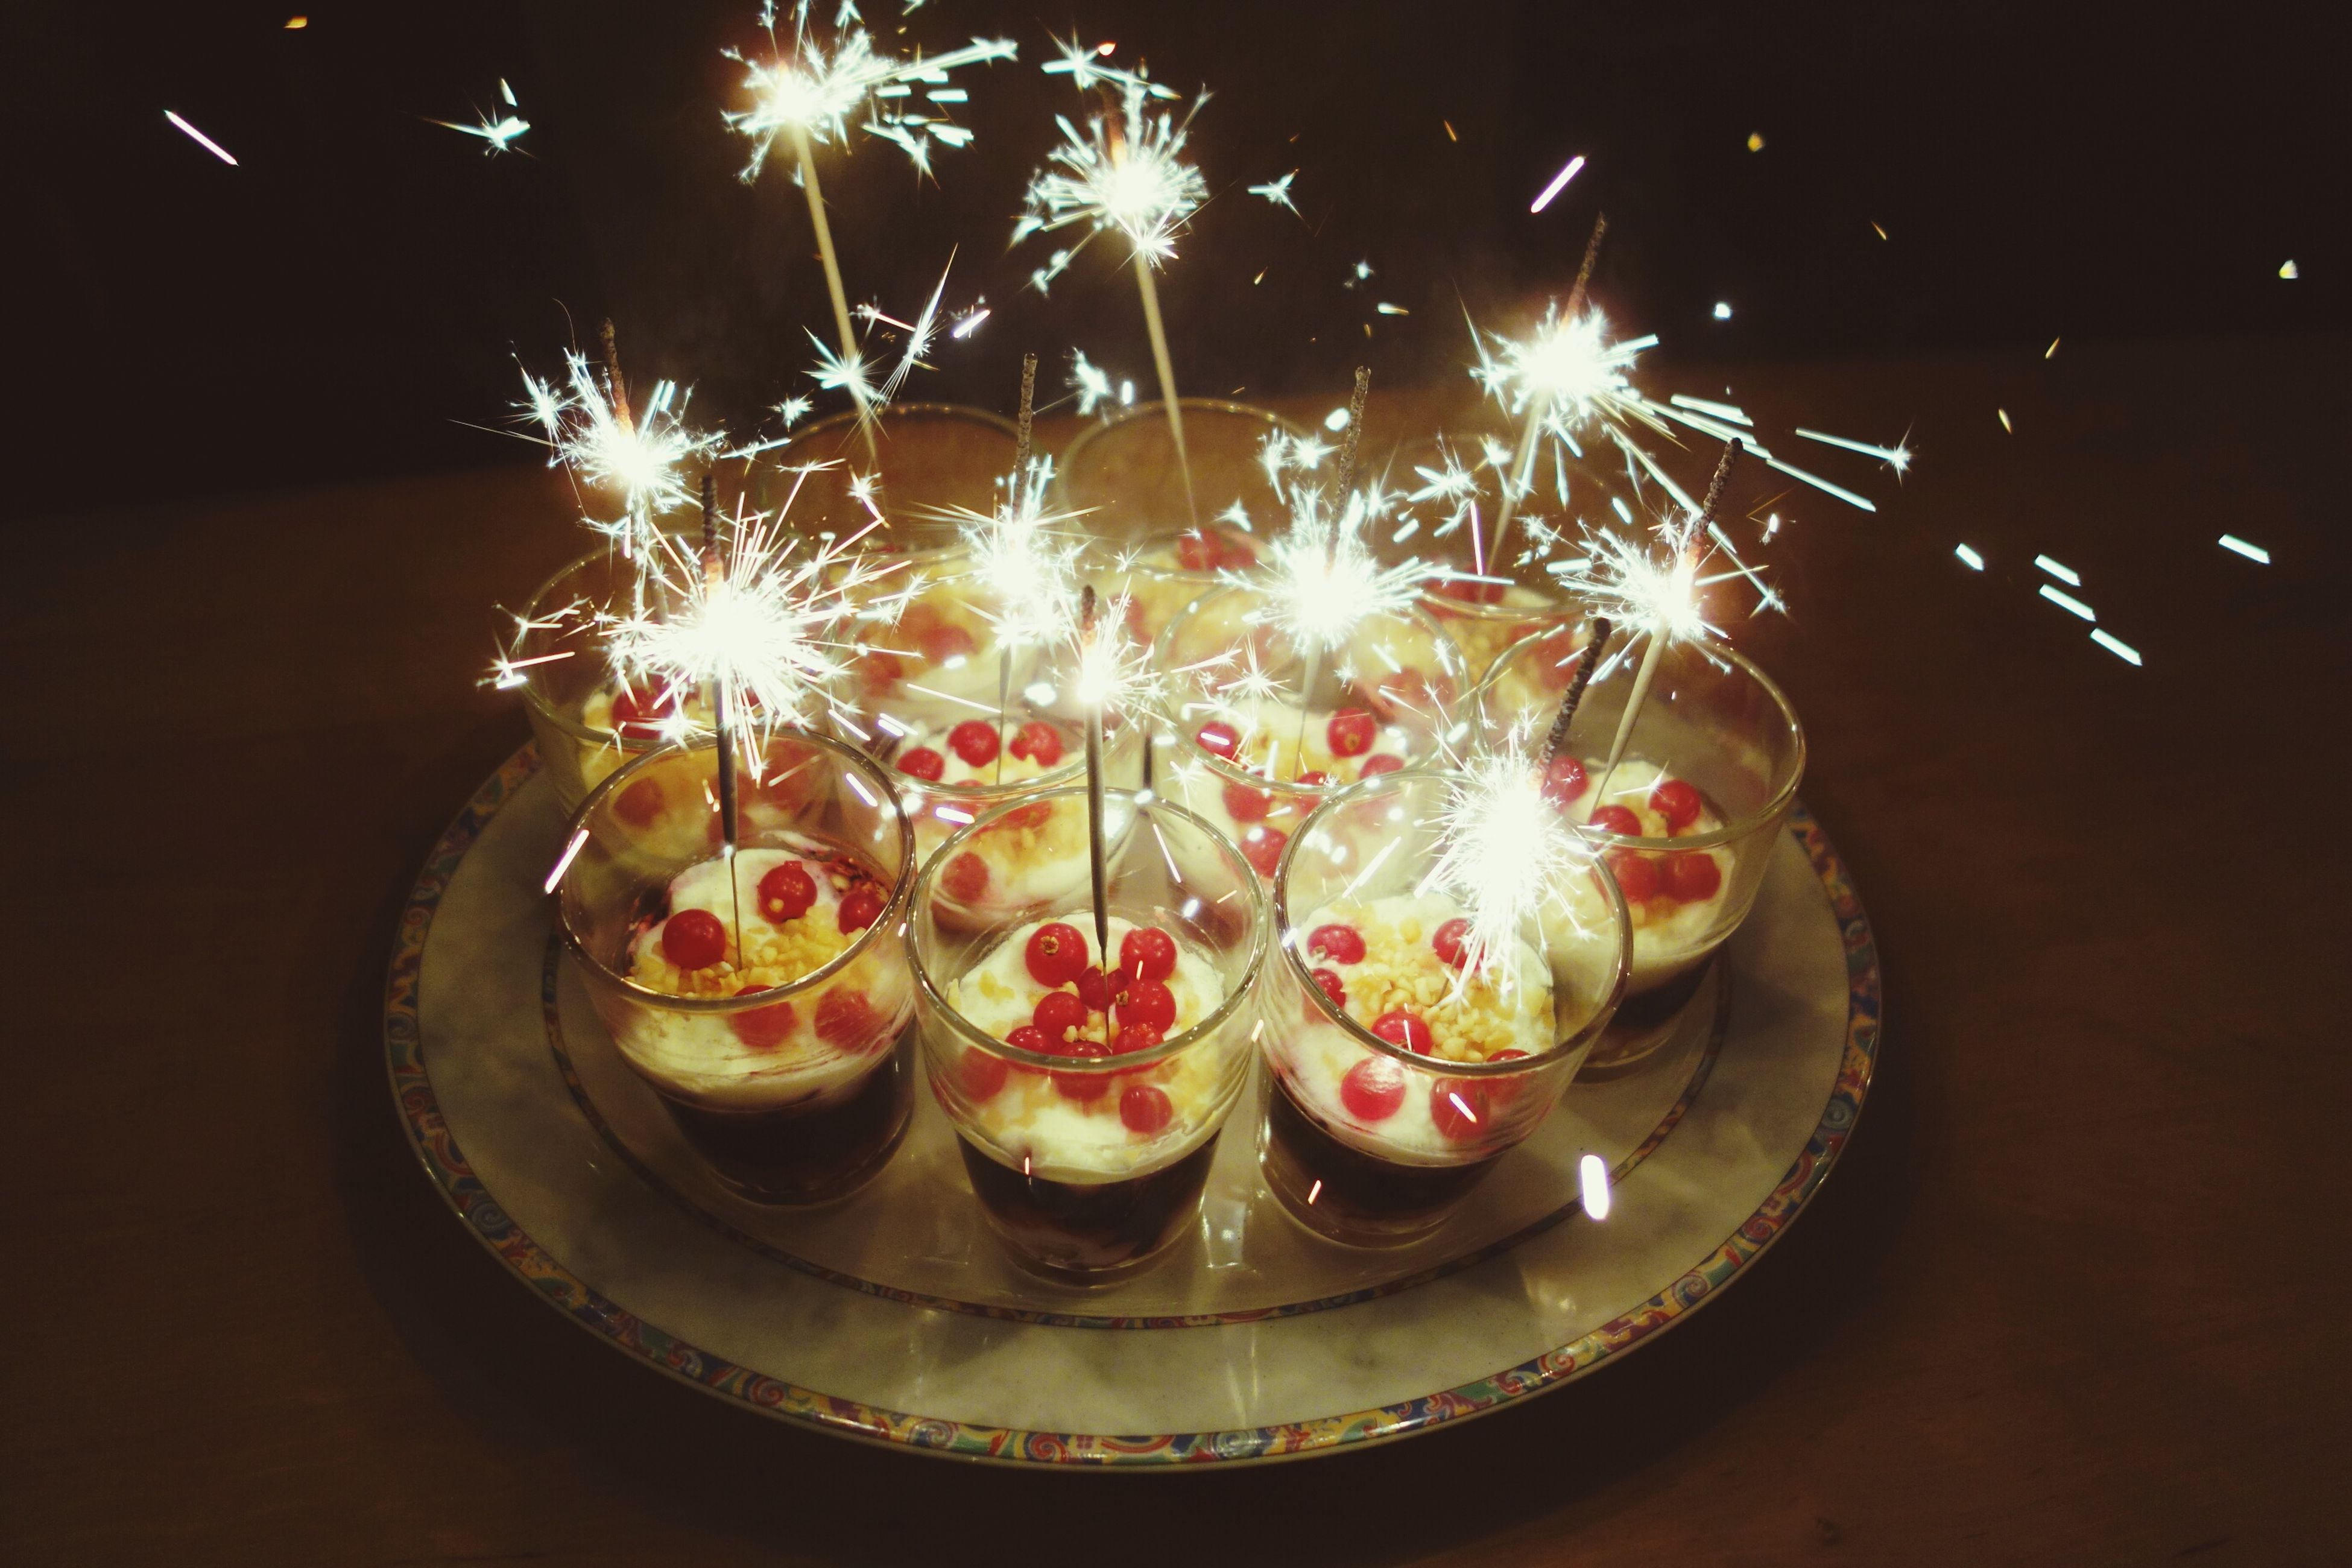 illuminated, celebration, night, indoors, decoration, fire - natural phenomenon, glowing, flame, candle, burning, sweet food, christmas, lit, still life, multi colored, tradition, celebration event, heat - temperature, food, close-up